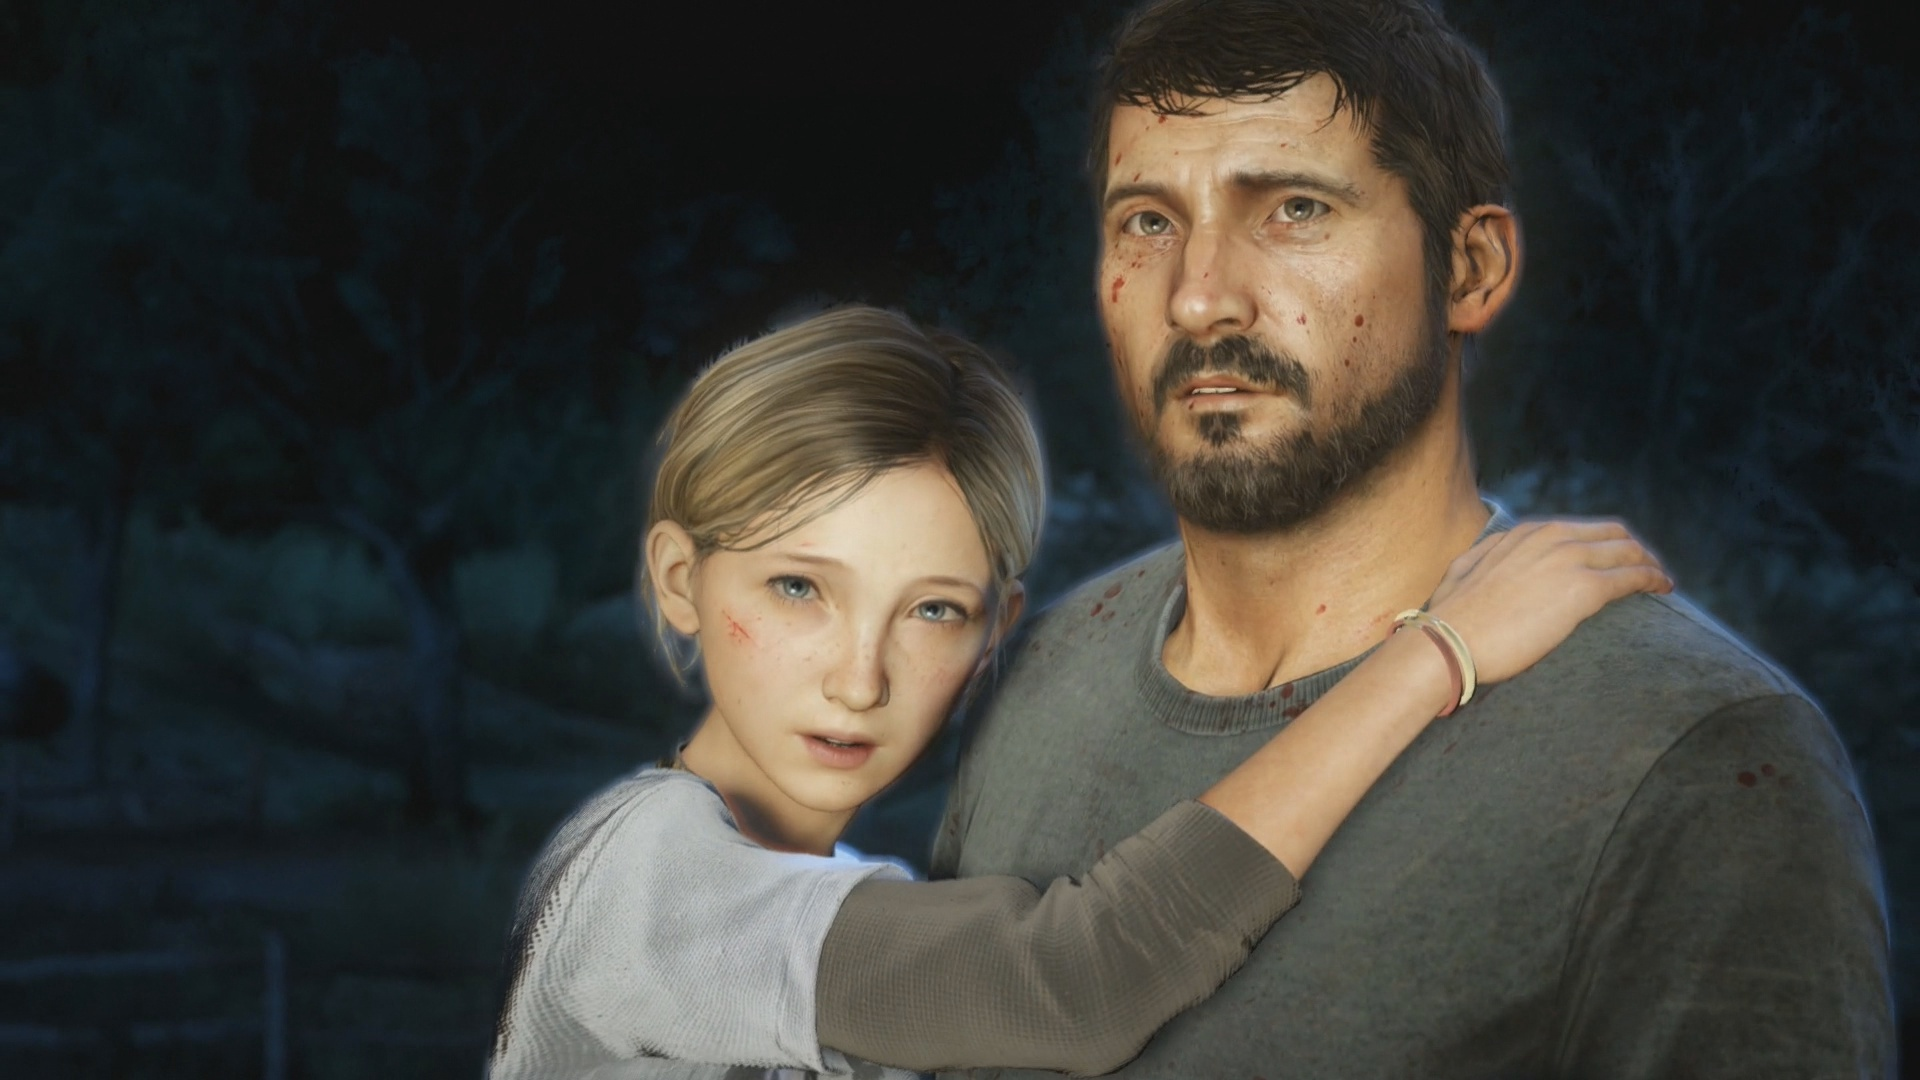 TheLastofusdaughter